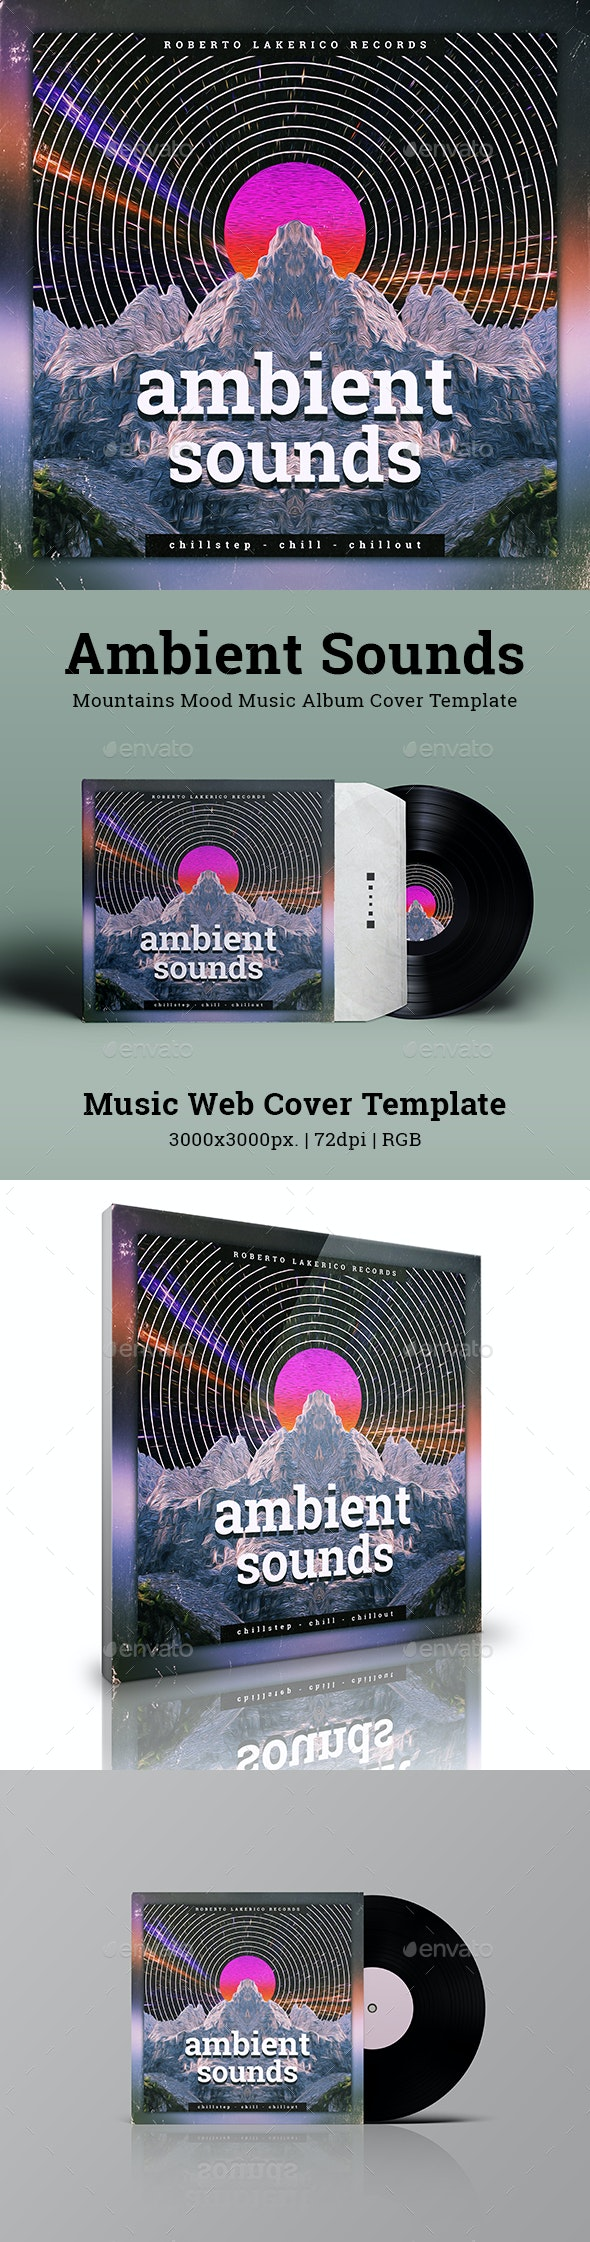 Ambient Sounds Mountains Mood Music Album Cover Template - Miscellaneous Social Media